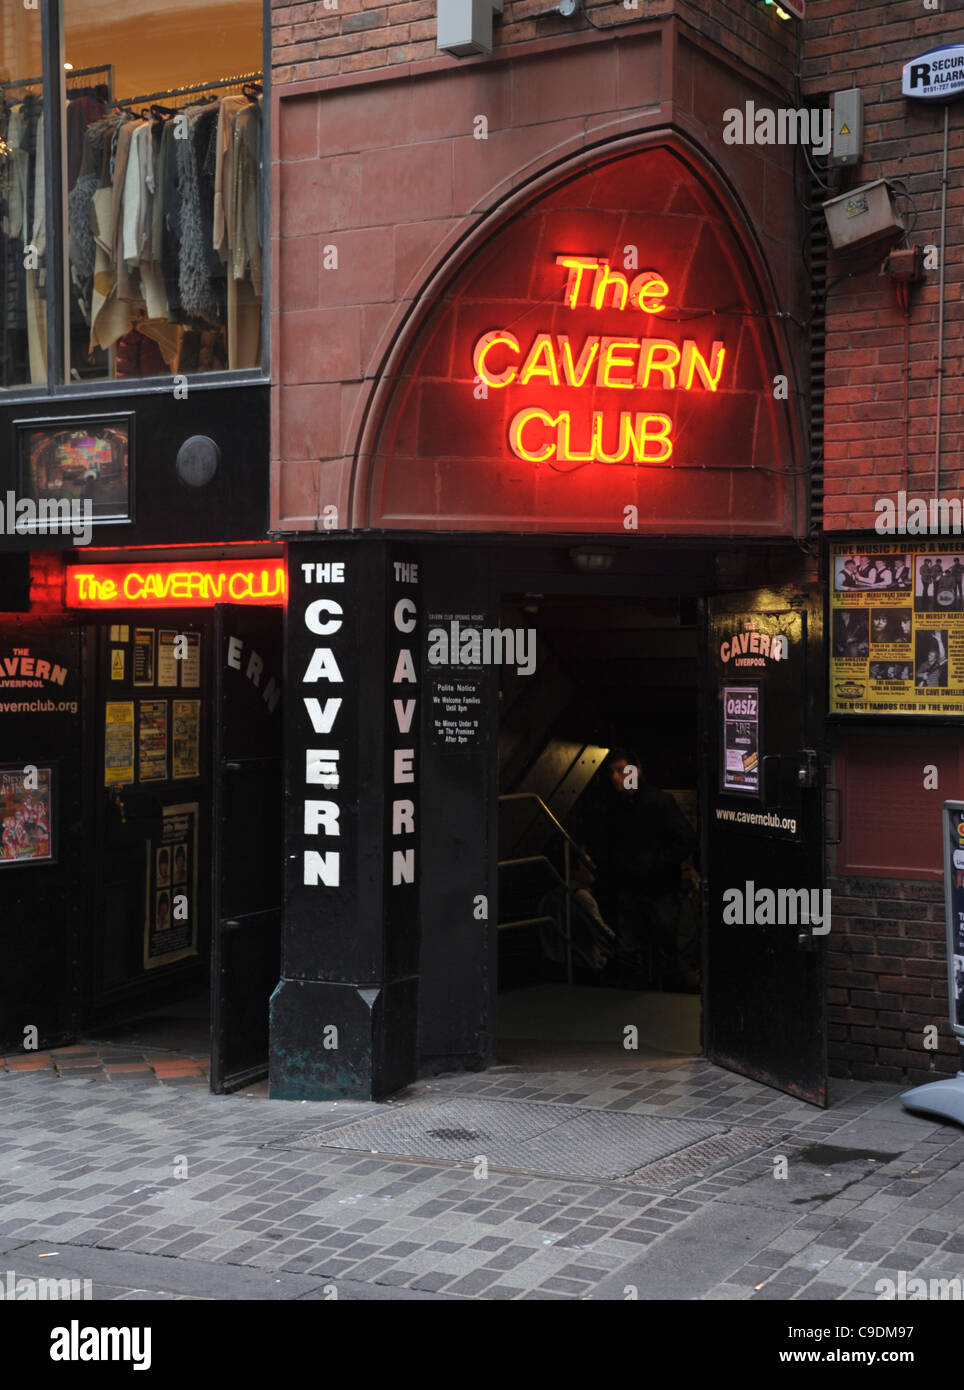 The Cavern Club, Liverpool, Merseyside, Britain, UK - Stock Image